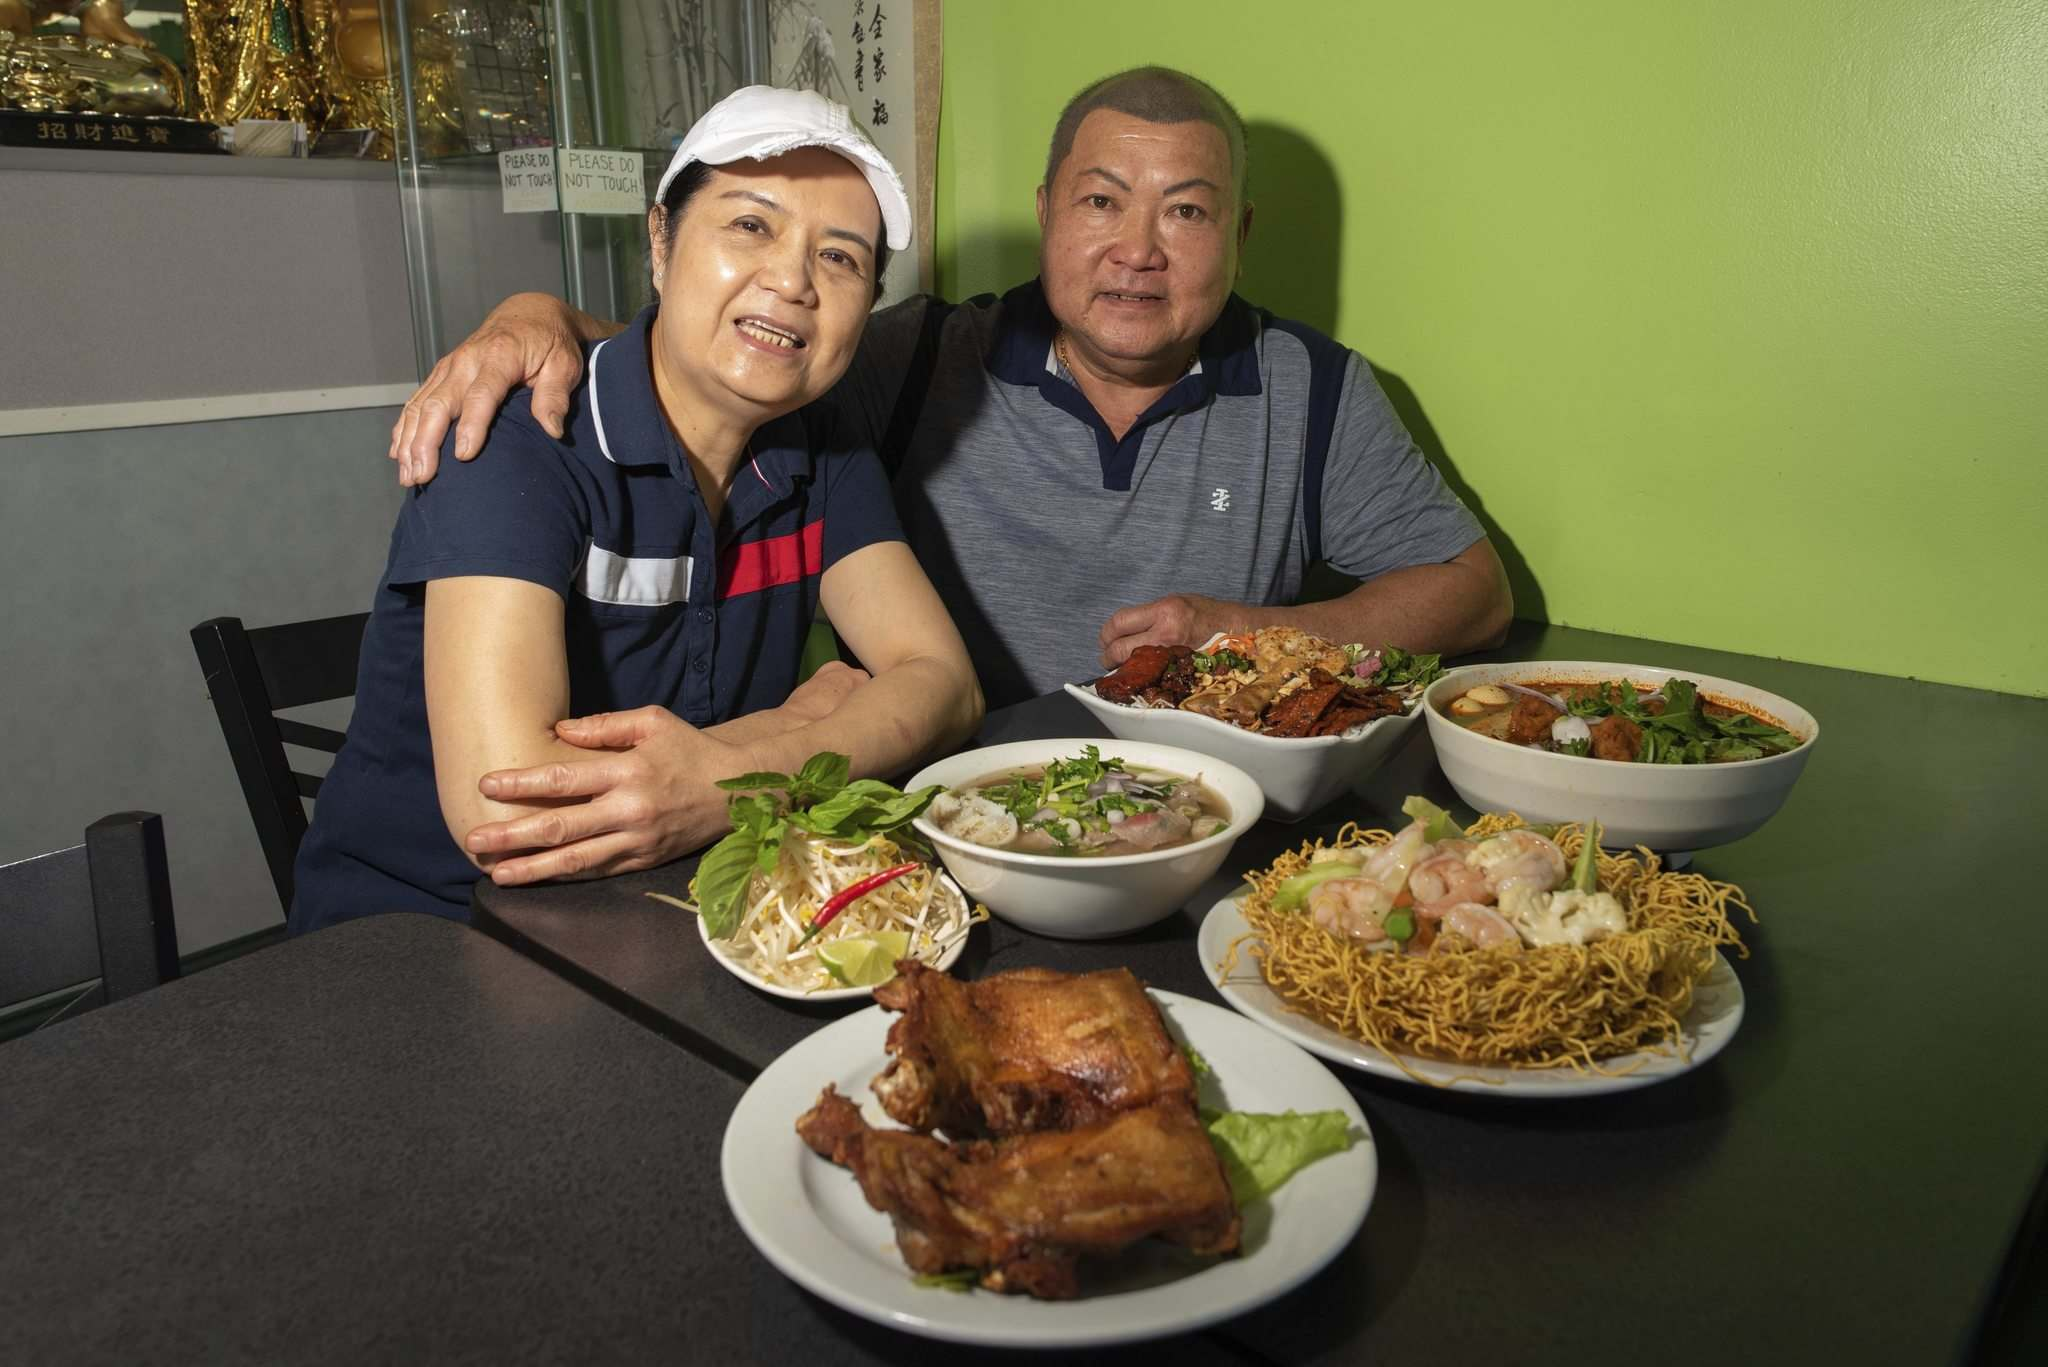 JESSE BOILY / WINNIPEG FREE PRESS</p><p>Son Dang, right, and his wife, Trinh Nguyen, in their Fort Gary restaurant, T.H. Dang.